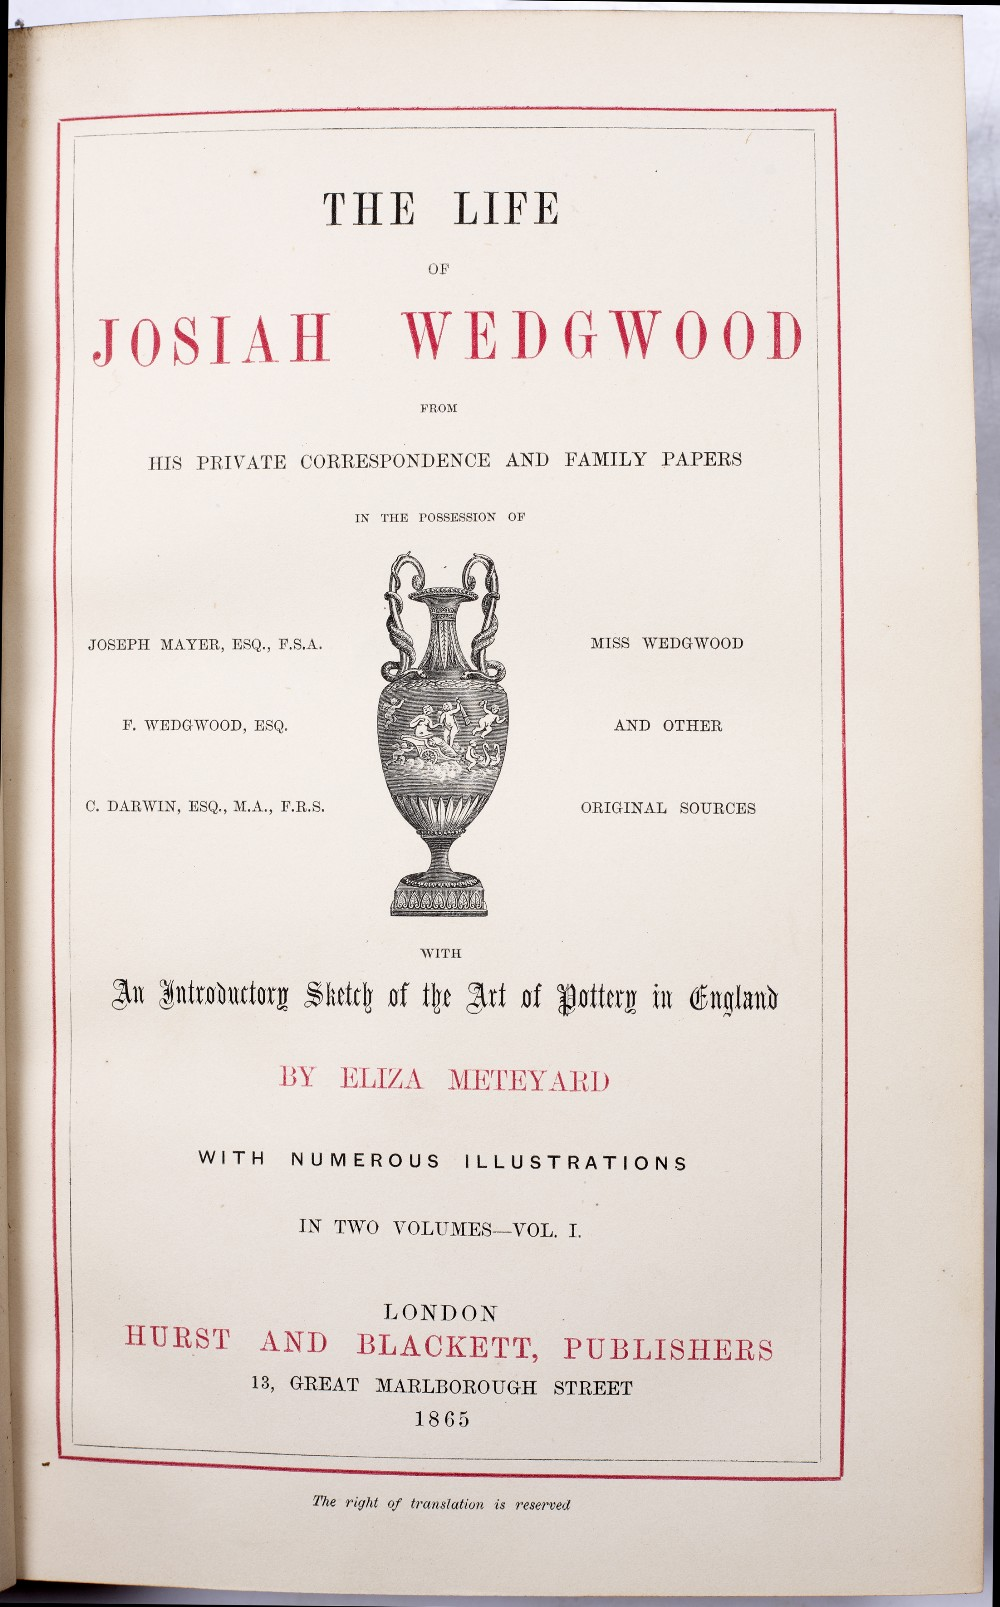 METEYARD, Eliza, 'The Life of Josiah Wedgwood from his Private Correspondence and Family Papers'. - Image 3 of 6